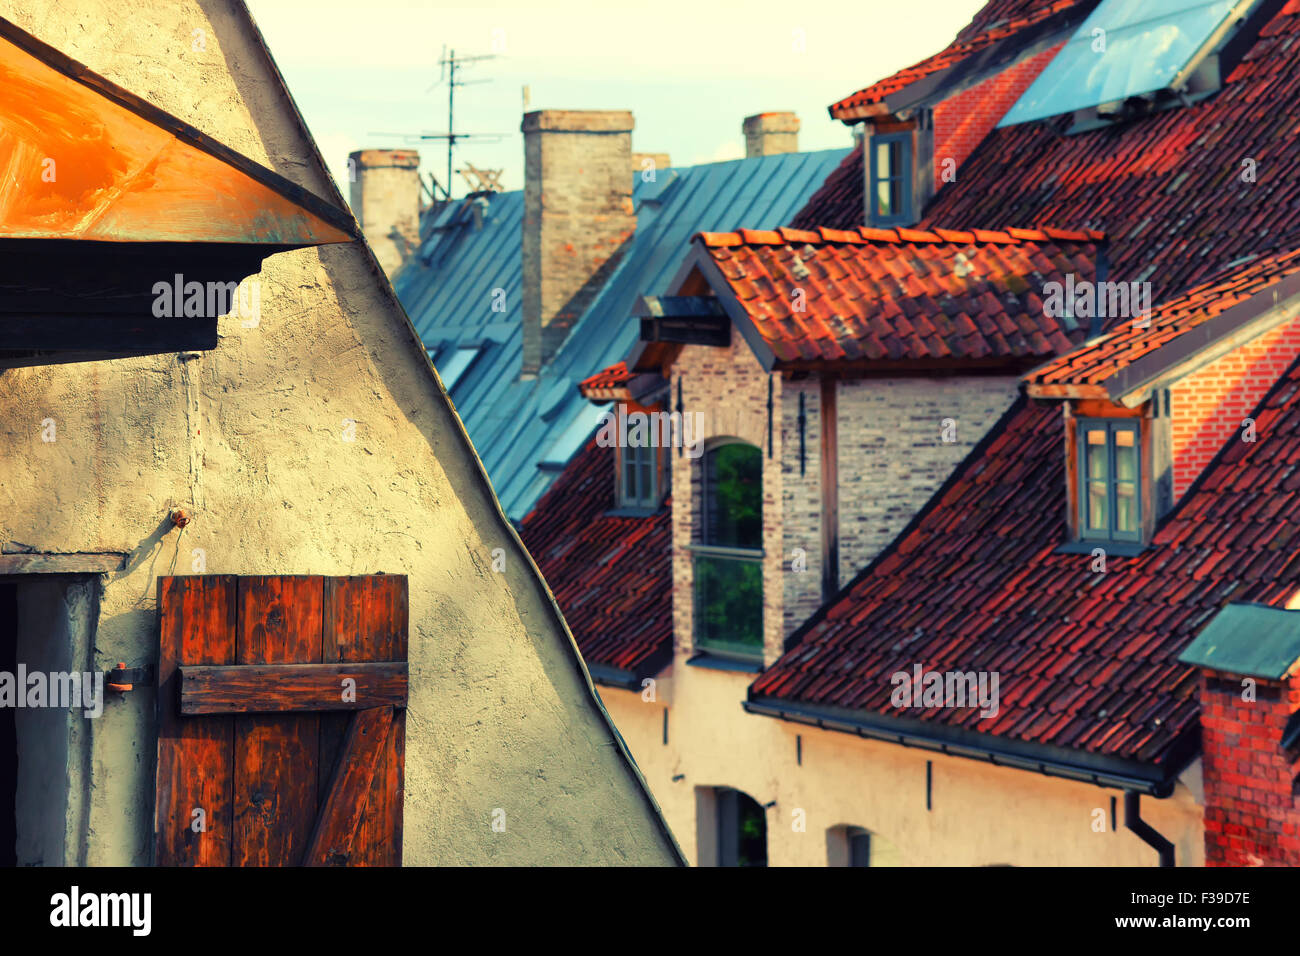 Latvia. Facade of the hangar with doors and red tiled roof with windows and chimneys in the Old Town Riga - Stock Image